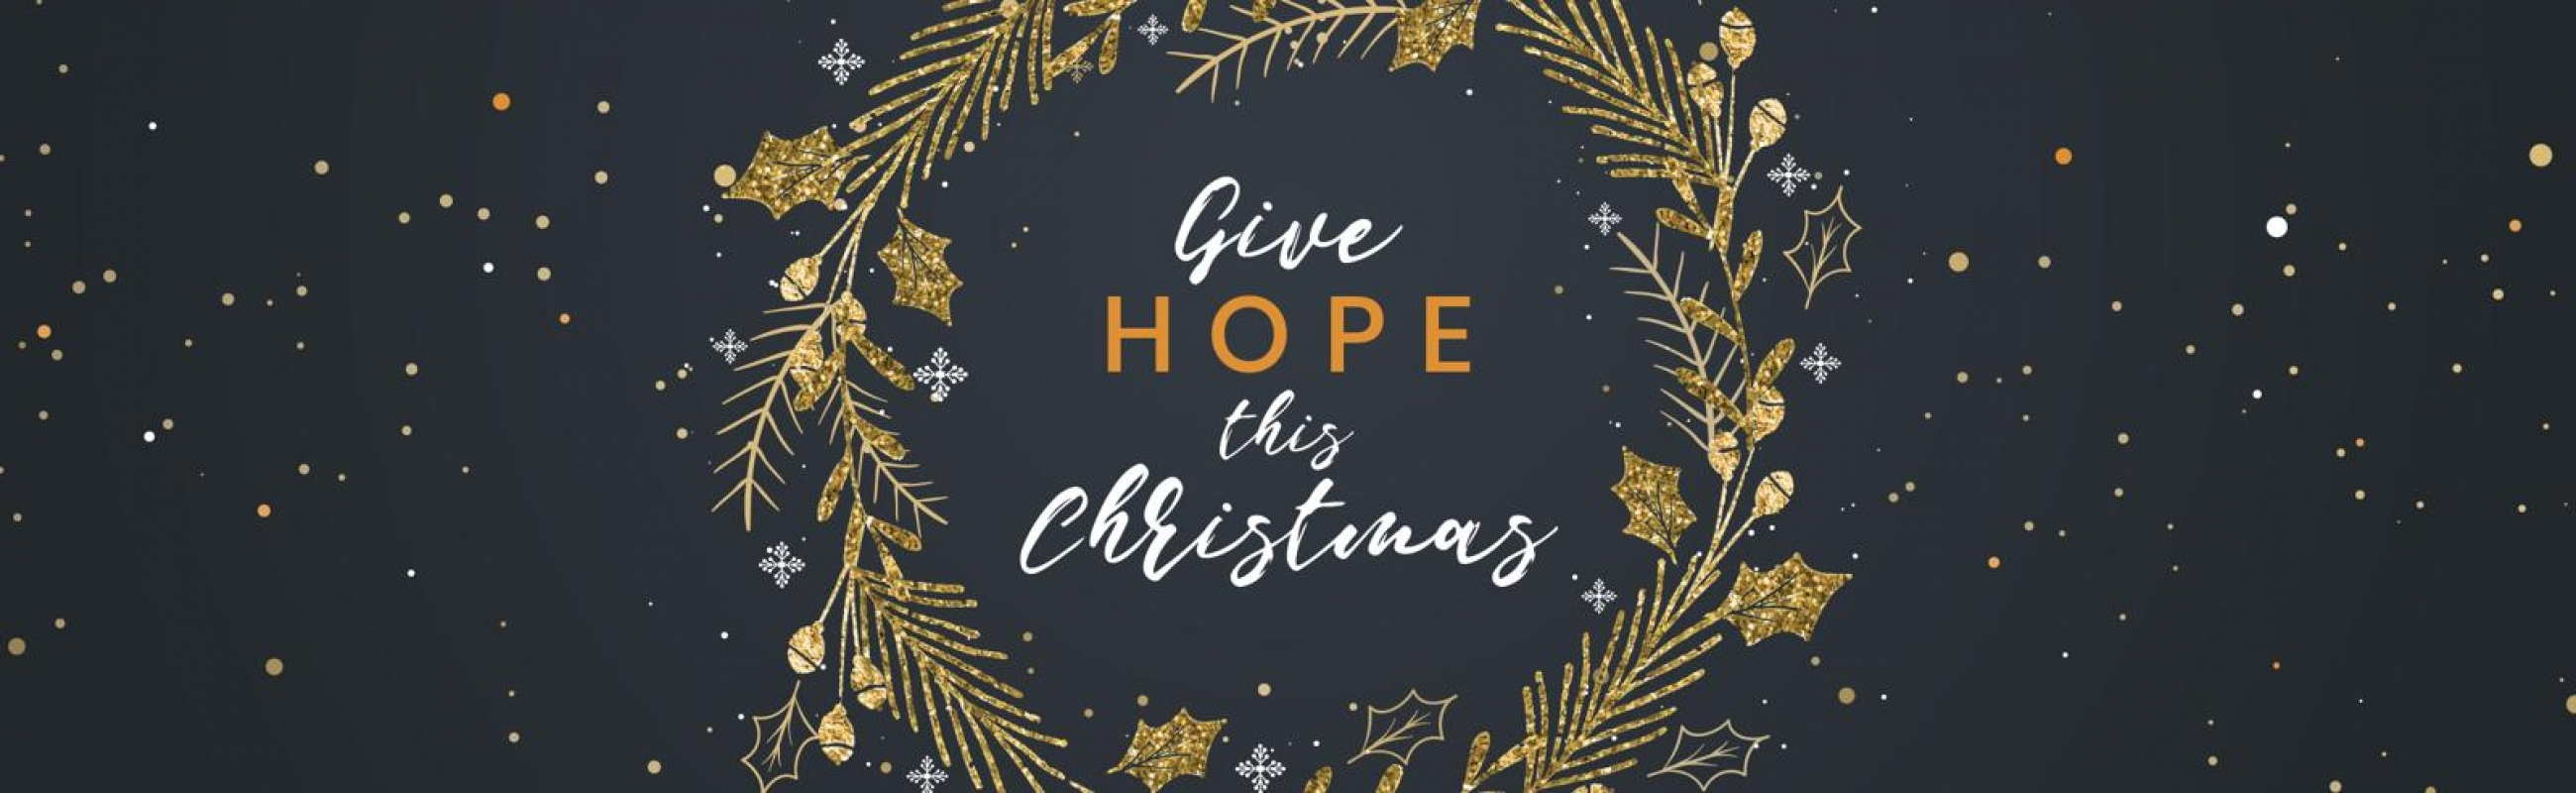 Give hope this Christmas